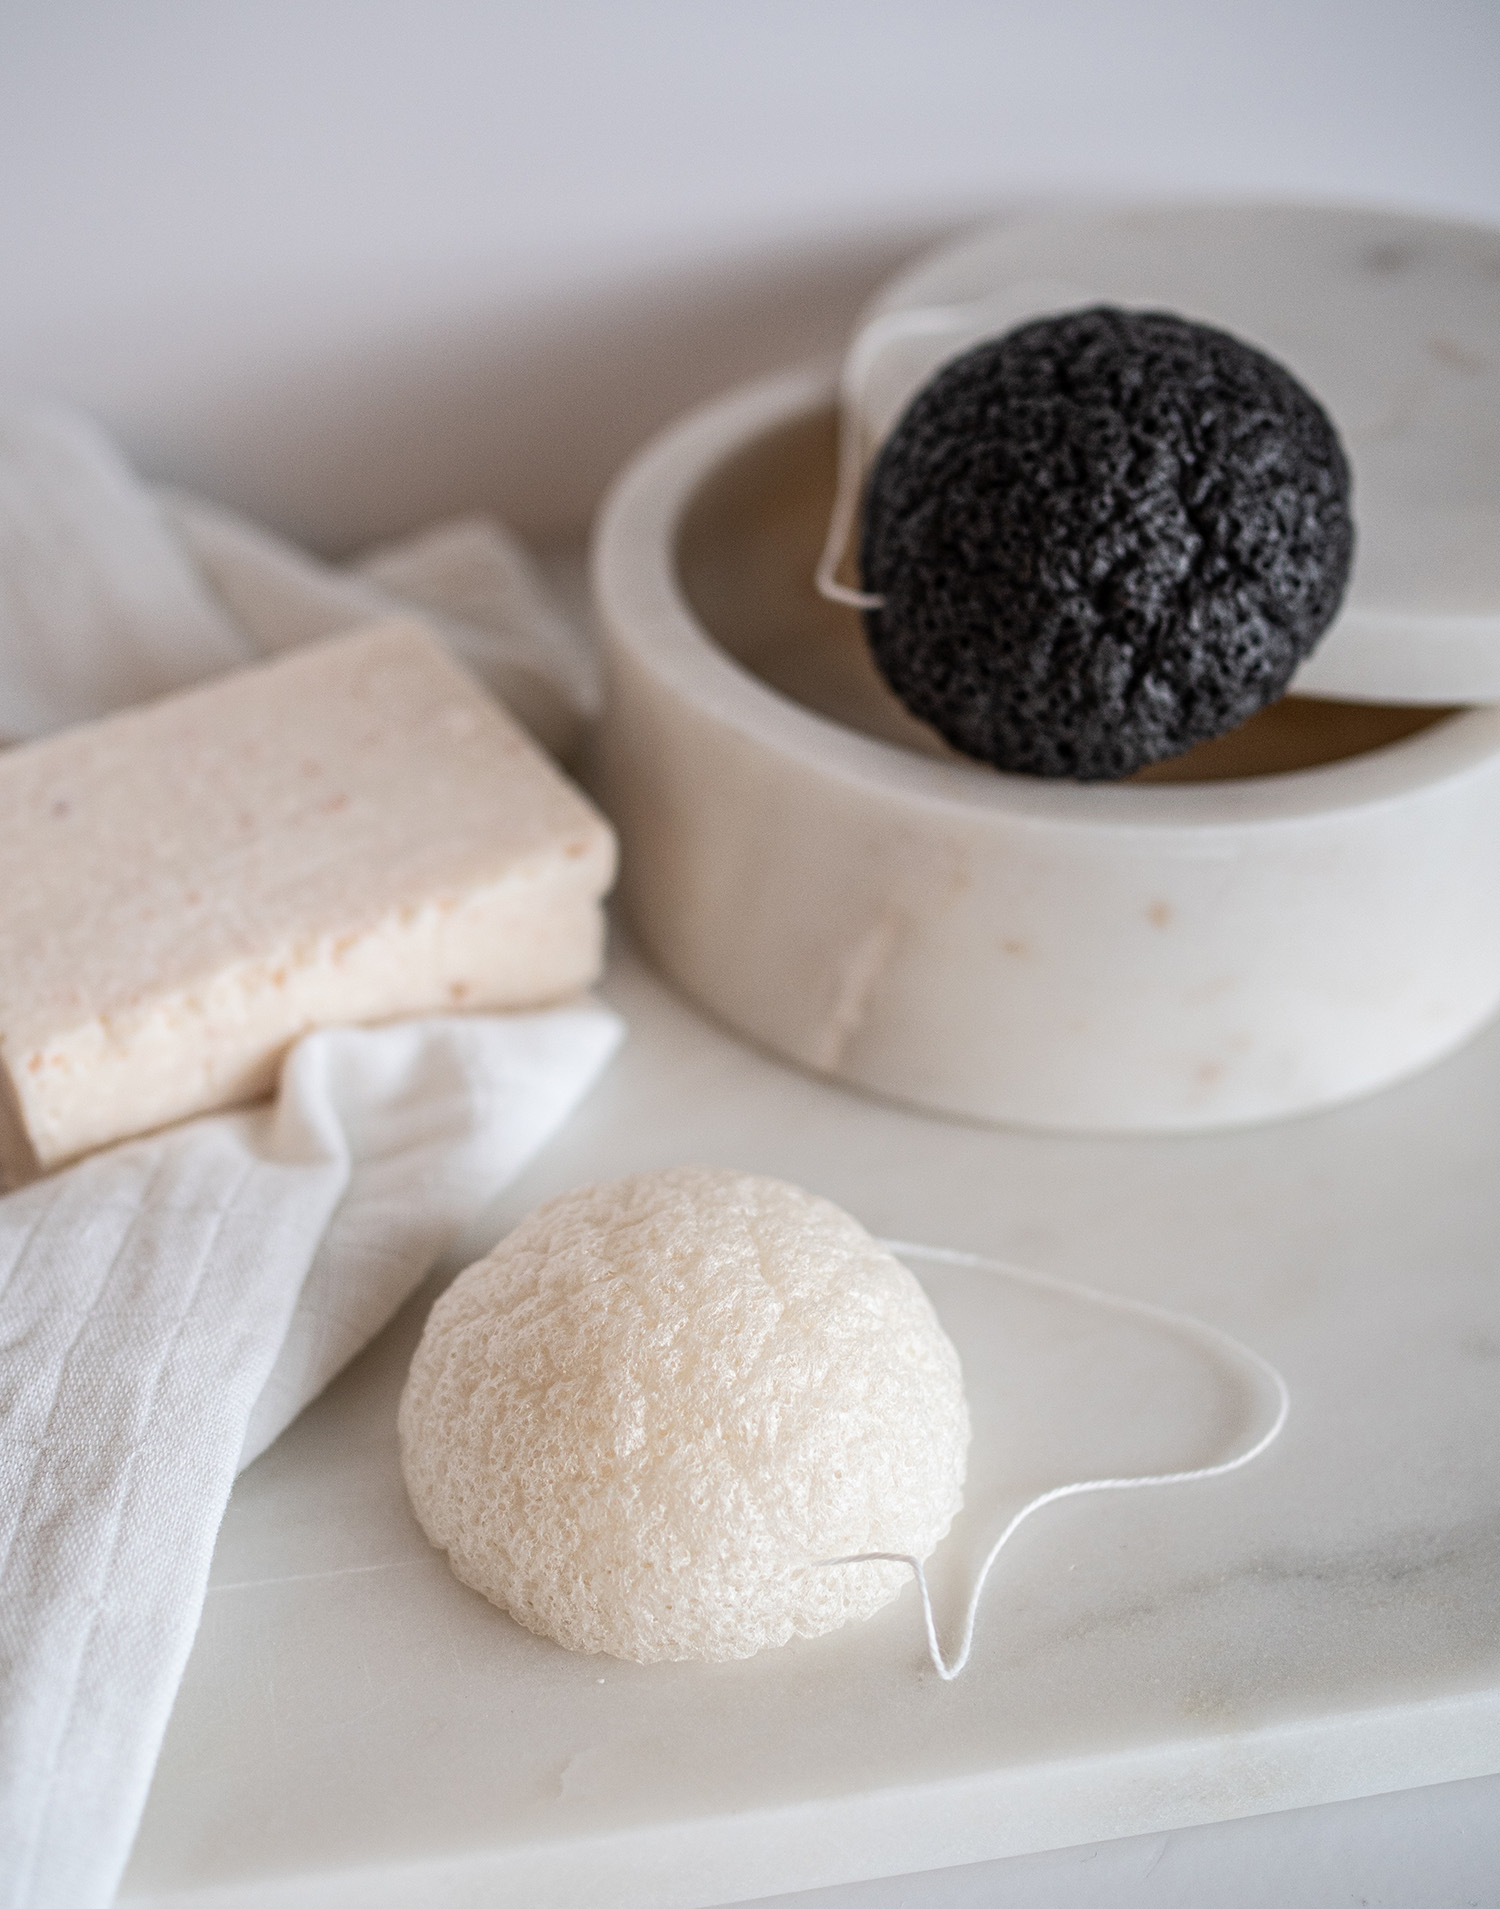 Konjac sponge set of 2